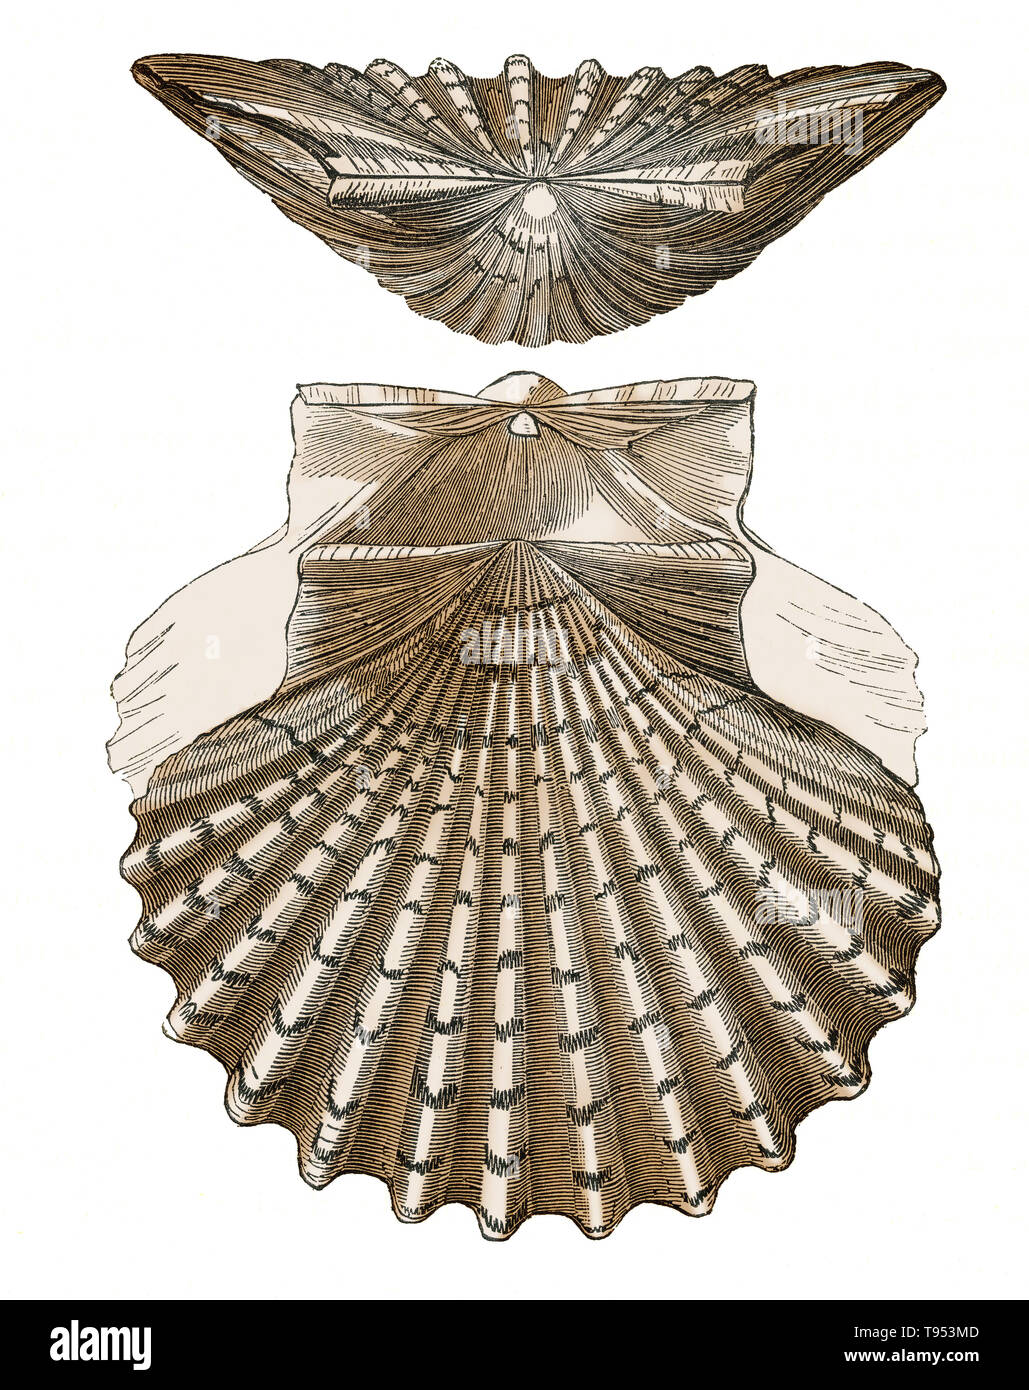 Shell of Pecten jacobaeus, a scallop from the Mediterranean Sea.  Illustration from Louis Figuier's The World Before the Deluge, 1867 American edition. - Stock Image